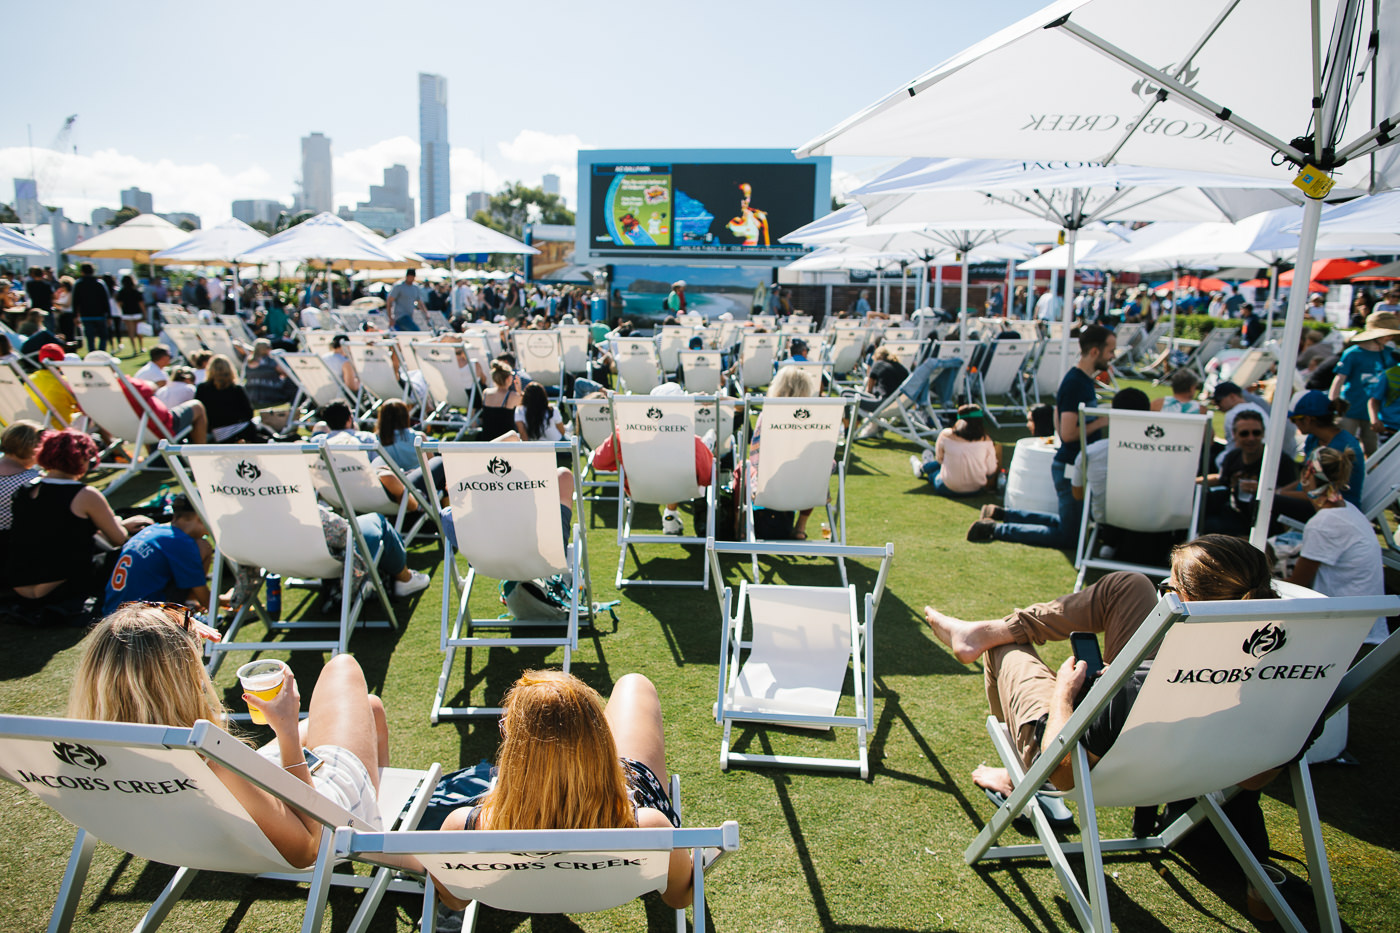 australian open public area - beach chairs in the melbourne beach club at the australian open